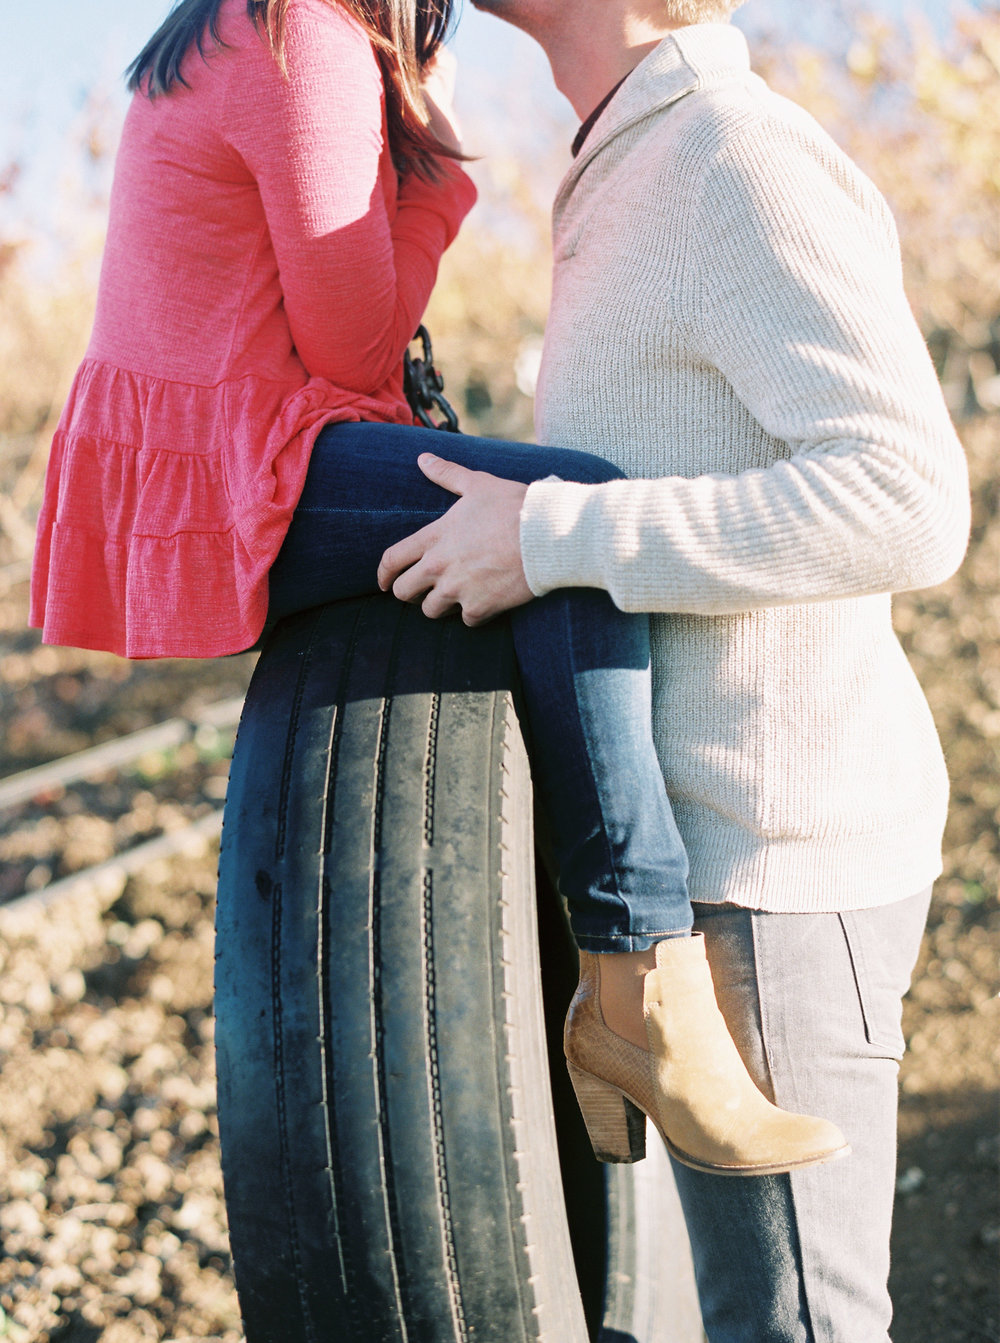 boaventura-winery-engagement-in-livermore-california.jpg